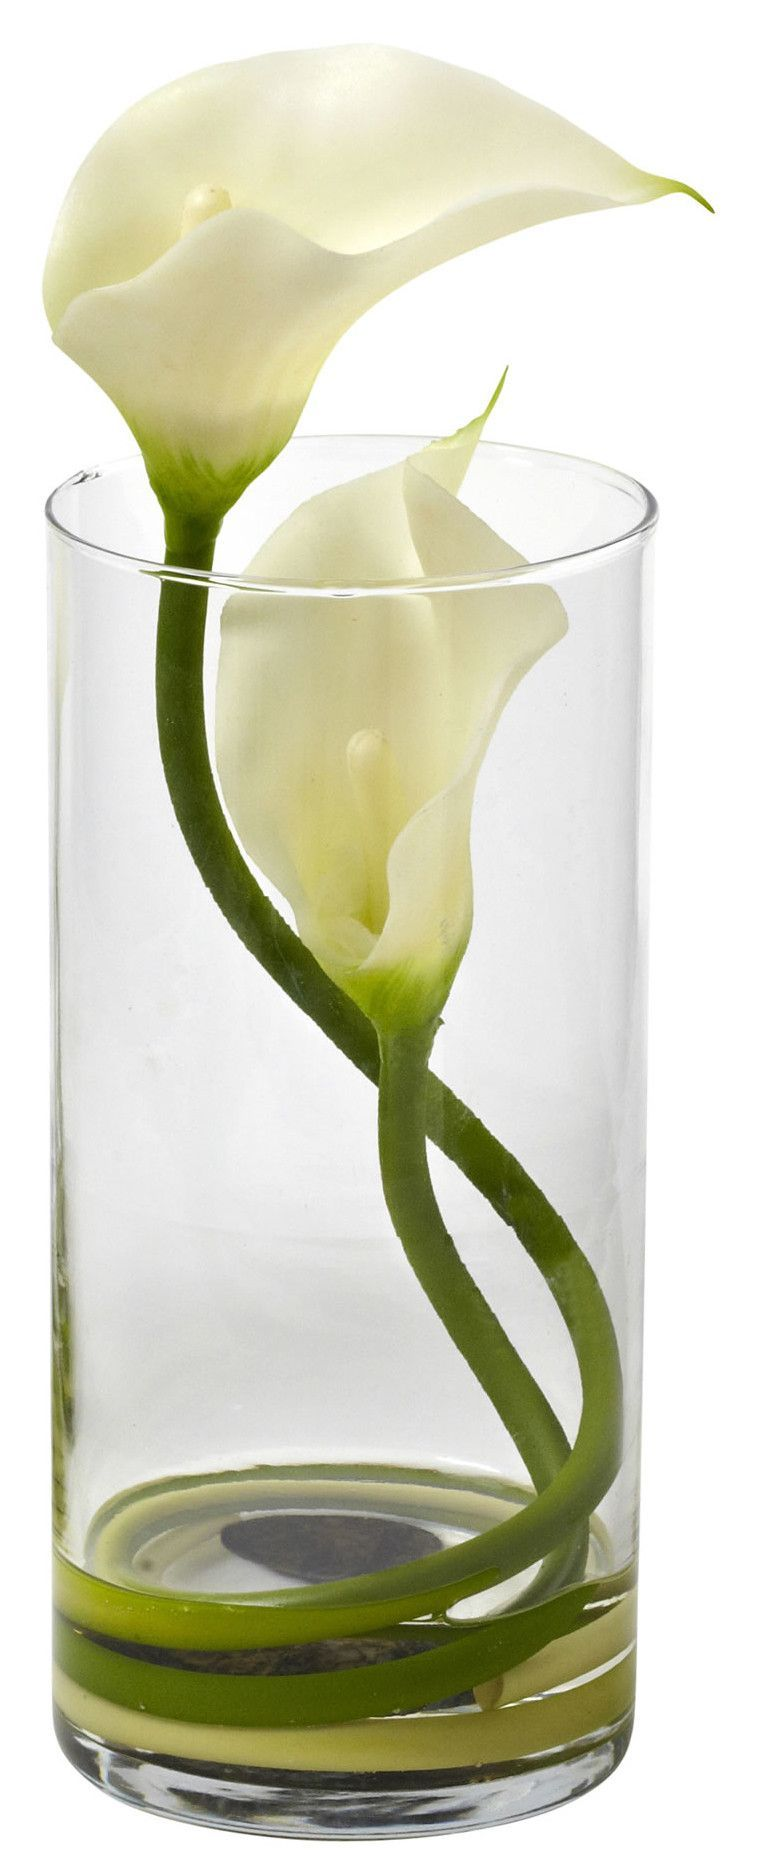 The elegant calla lily for your wedding calla lily pinterest learn about calla lily flowers including calla lily sizes and color range from the experts at jbirdny calla lily calla lily bouquet calla lily izmirmasajfo